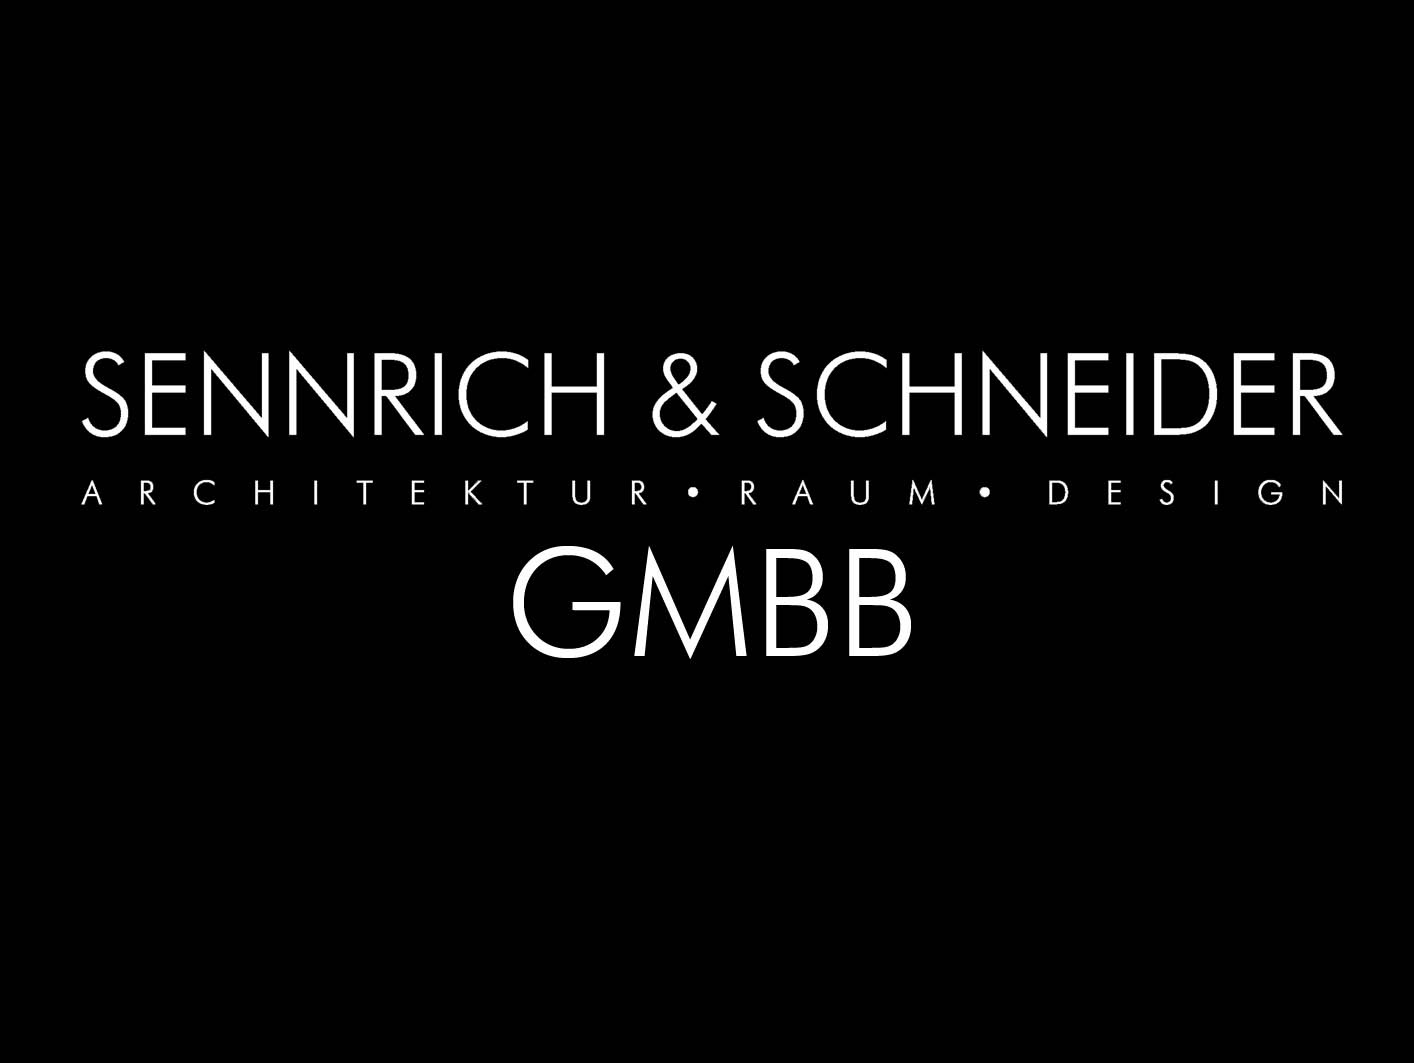 nderung der unternehmensform sennrich und schneider gmbb. Black Bedroom Furniture Sets. Home Design Ideas